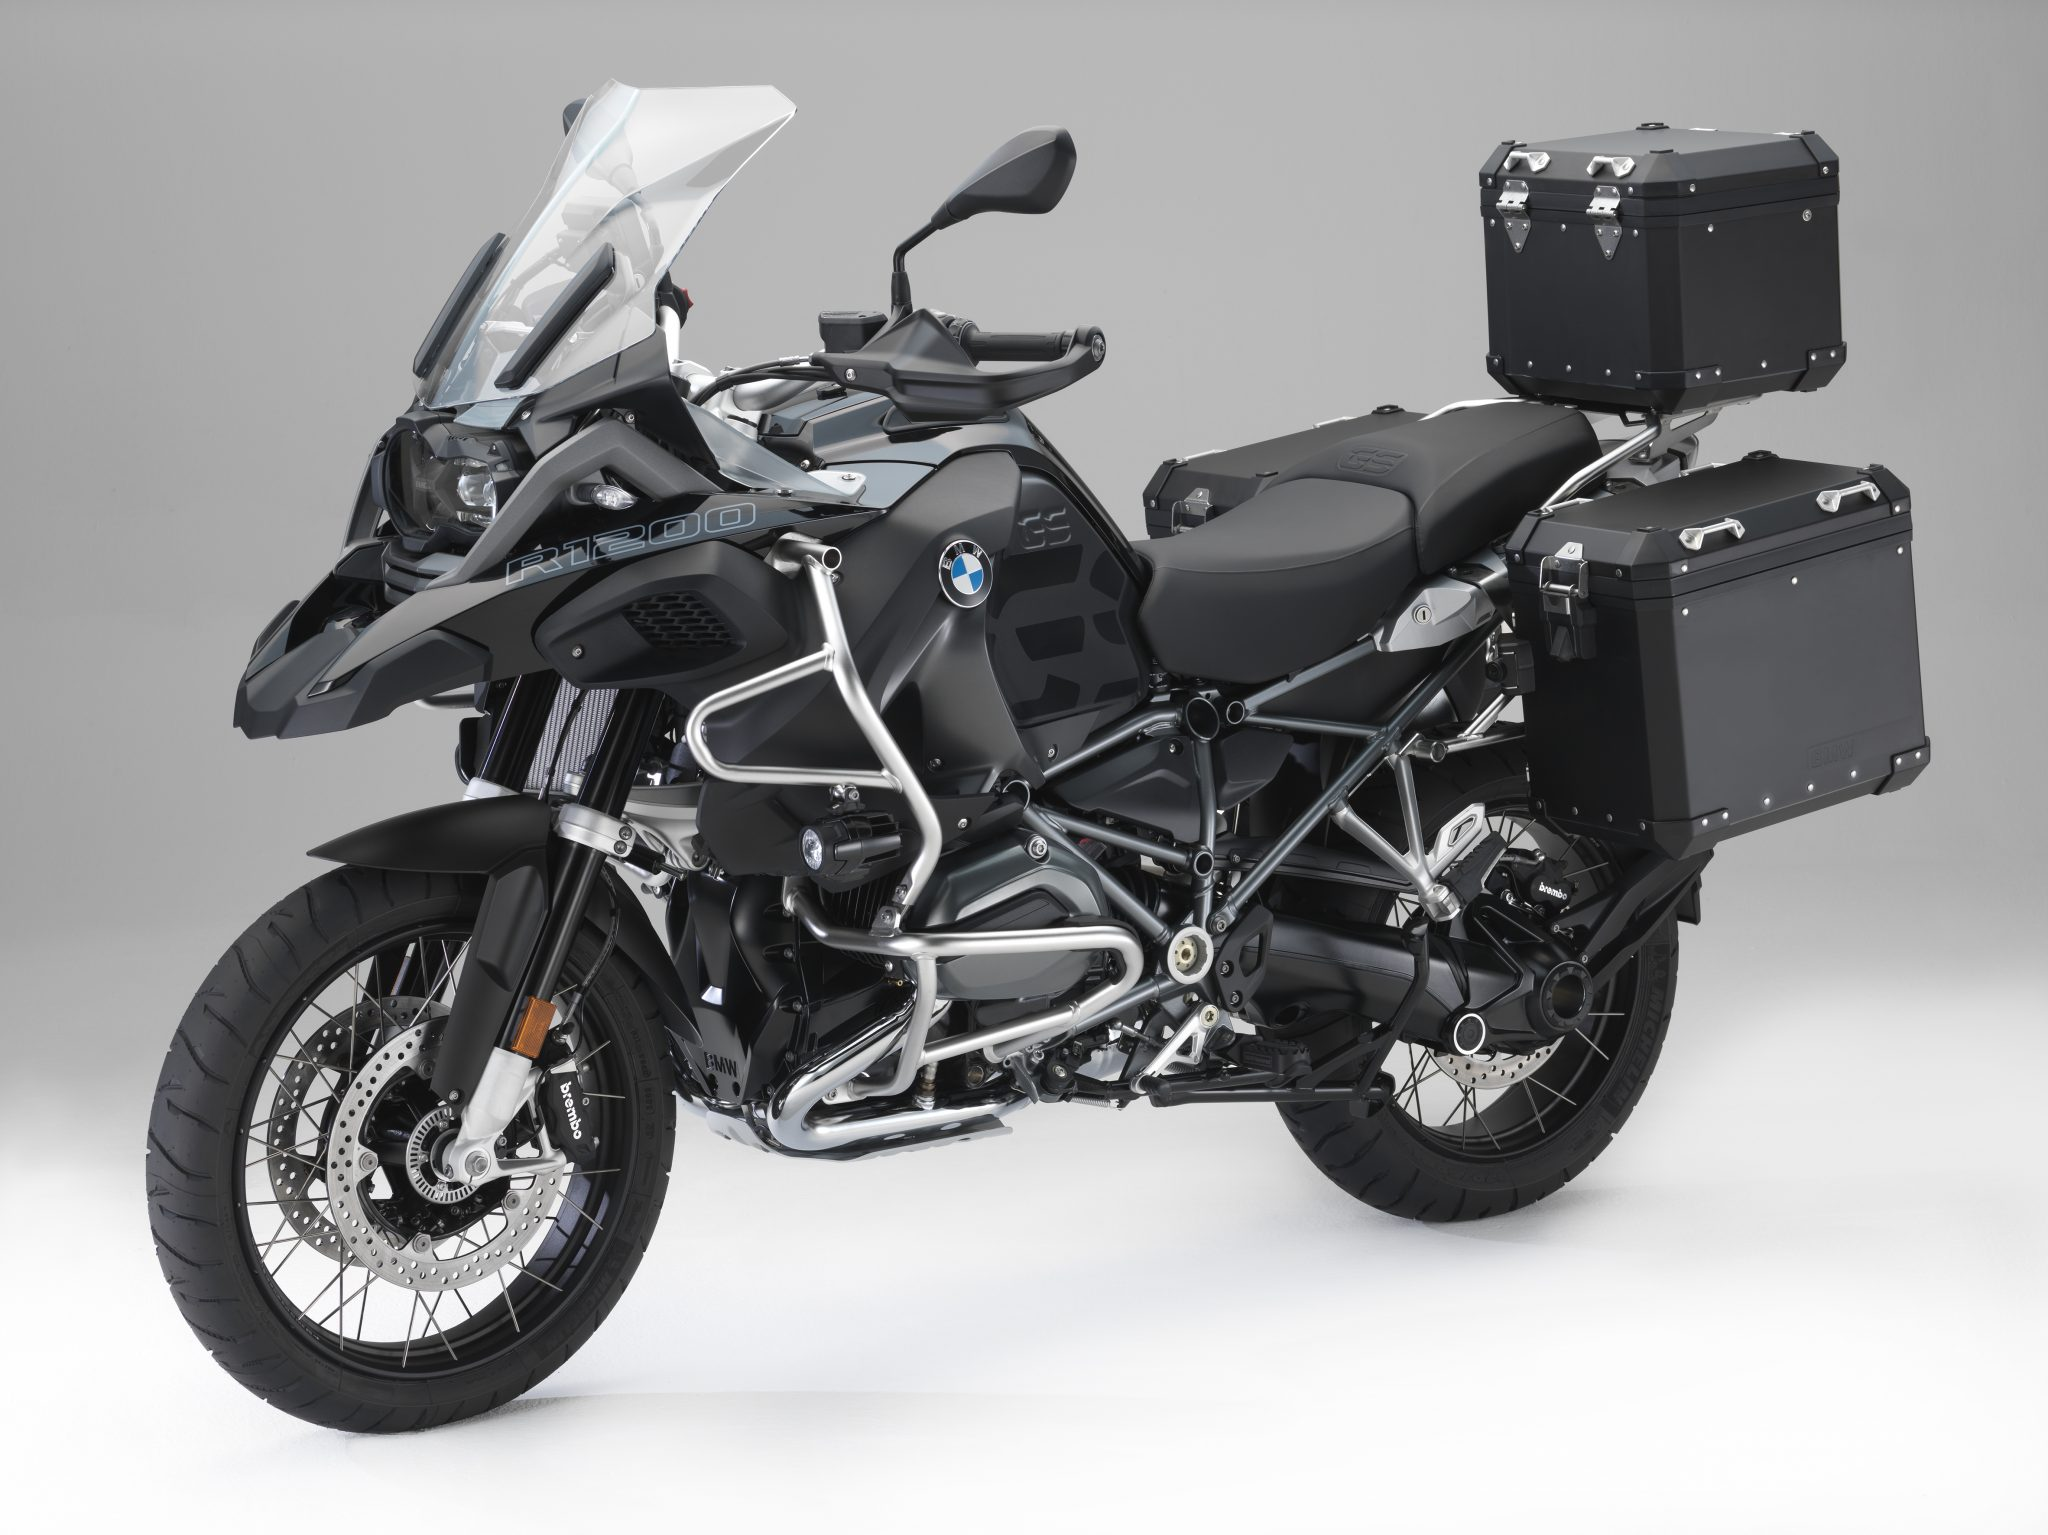 BMW Motorrad launches Edition Black original accessories for the R1200 GS